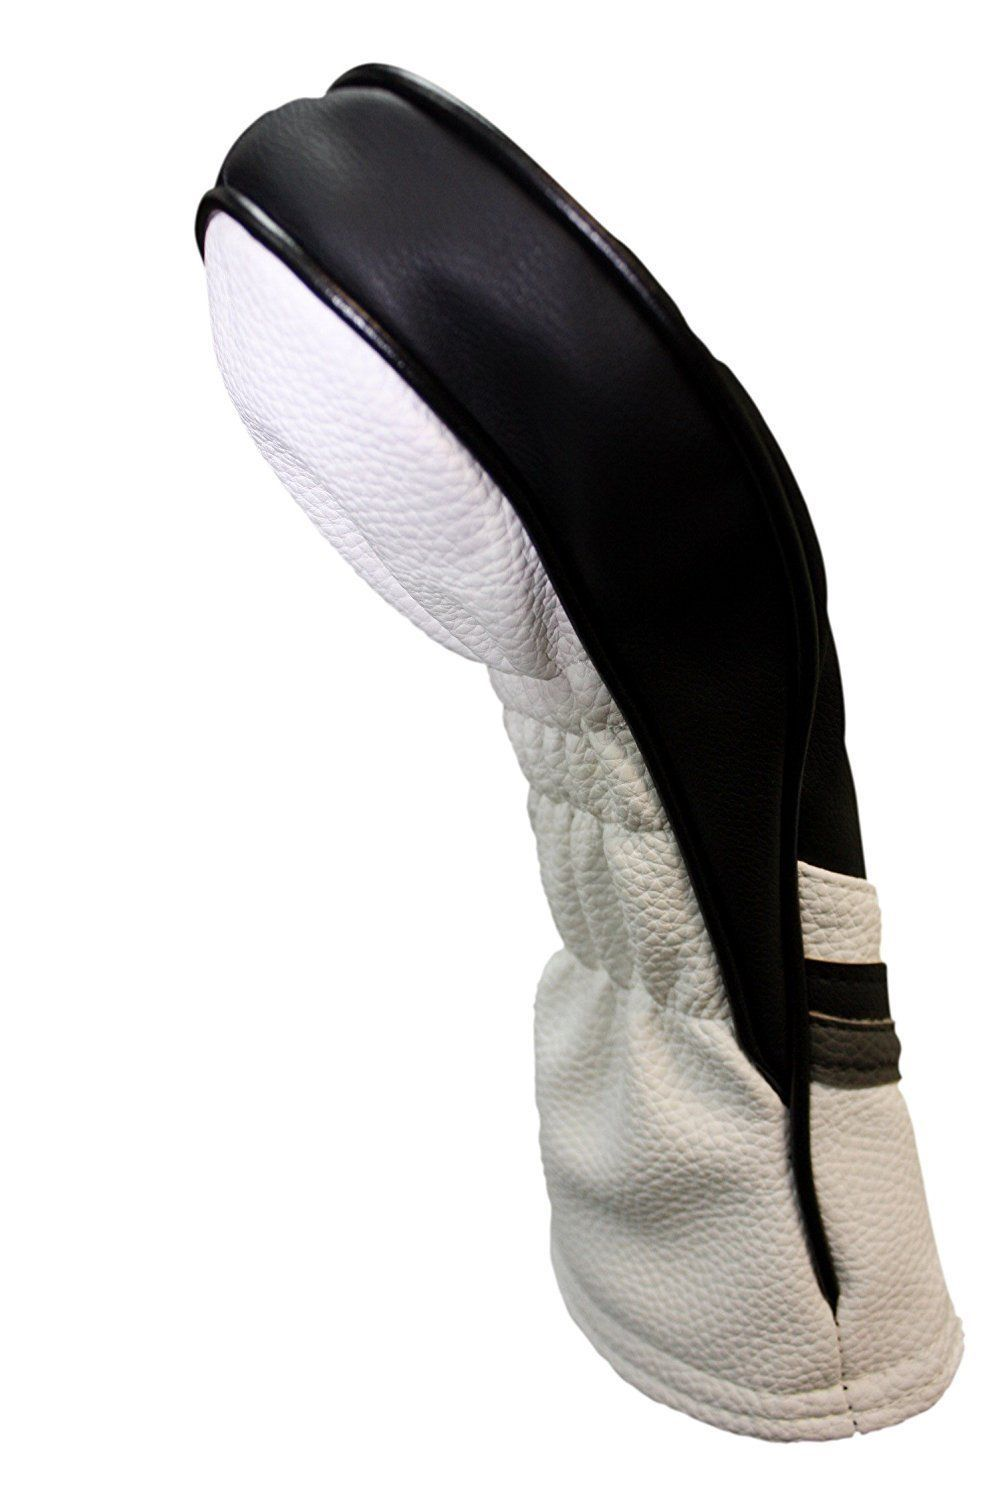 Majek Golf Headcover Black and White Leather Style #8 Hybrid Head Cover